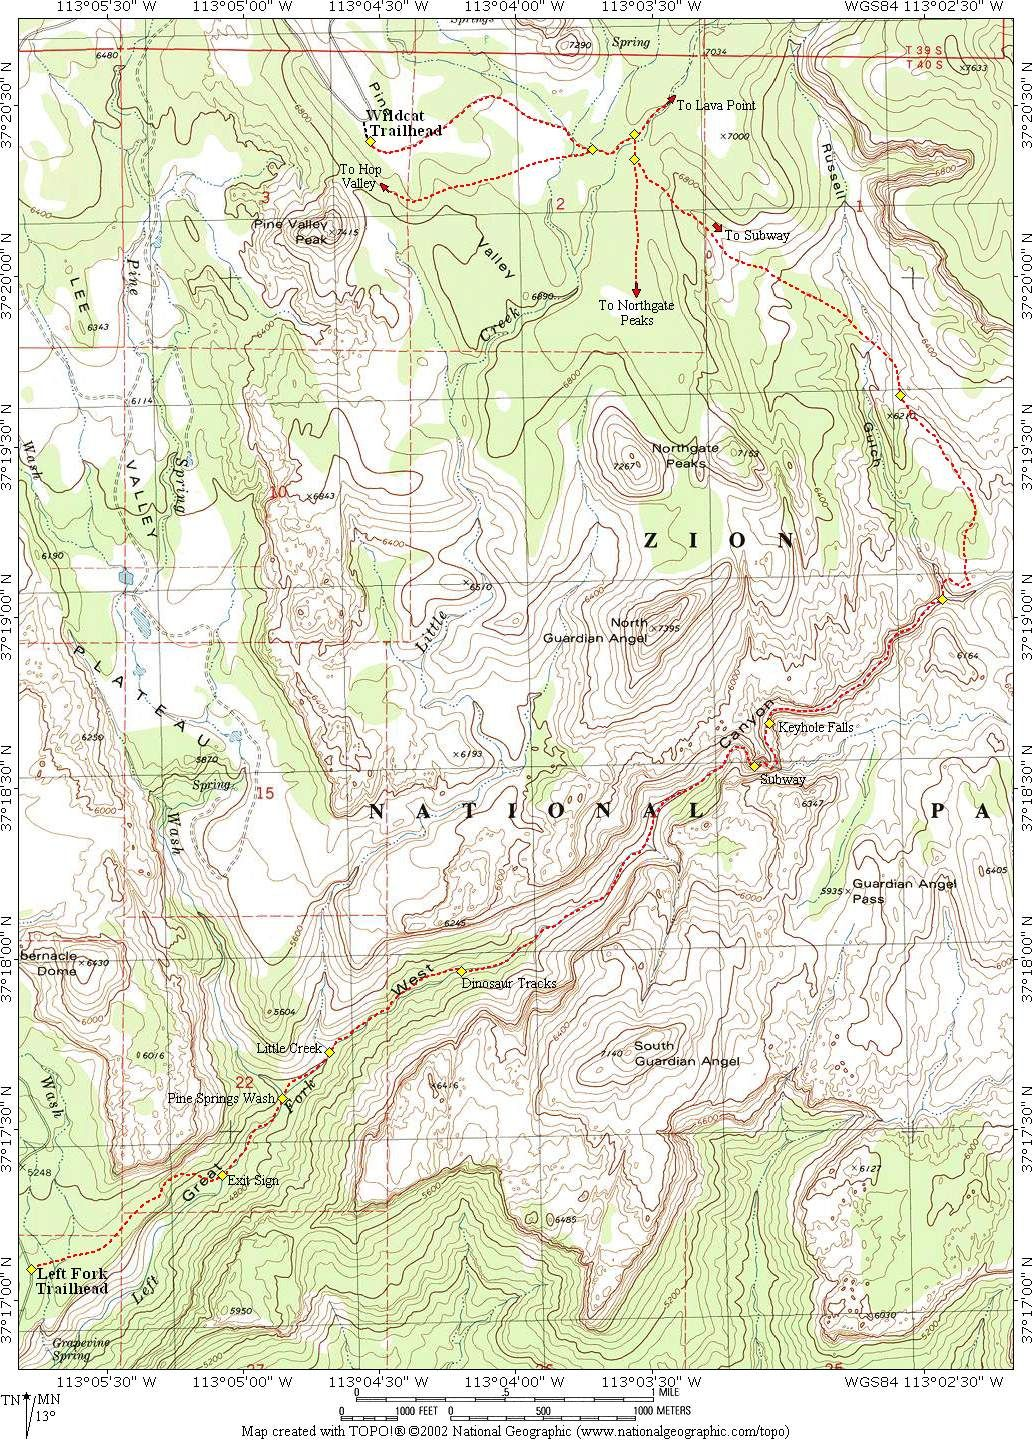 Zion Maps   NPMaps     just free maps  period together with Zion Maps   NPMaps     just free maps  period furthermore Best Ways to Get to Zion National Park   Zion Ponderosa together with Zion National Park   Trails besides Best Wheelchair Friendly Trails in Zion National Park   AllTrails besides Angels Landing Trail Map moreover Zion Narrows Hike from the Bottom Up likewise  also Zion National Park C ing Guide   Park Ranger John in addition  furthermore  together with The Subway  Zion National Park additionally Official Zion National Park Map PDF   My Utah Parks in addition MAP Zion National Park Detail Thum Cute Zion National Park Map likewise C ing Info  Trails and Maps   Zion National Park in addition zion utah map – bnhspine. on zion national park hiking map